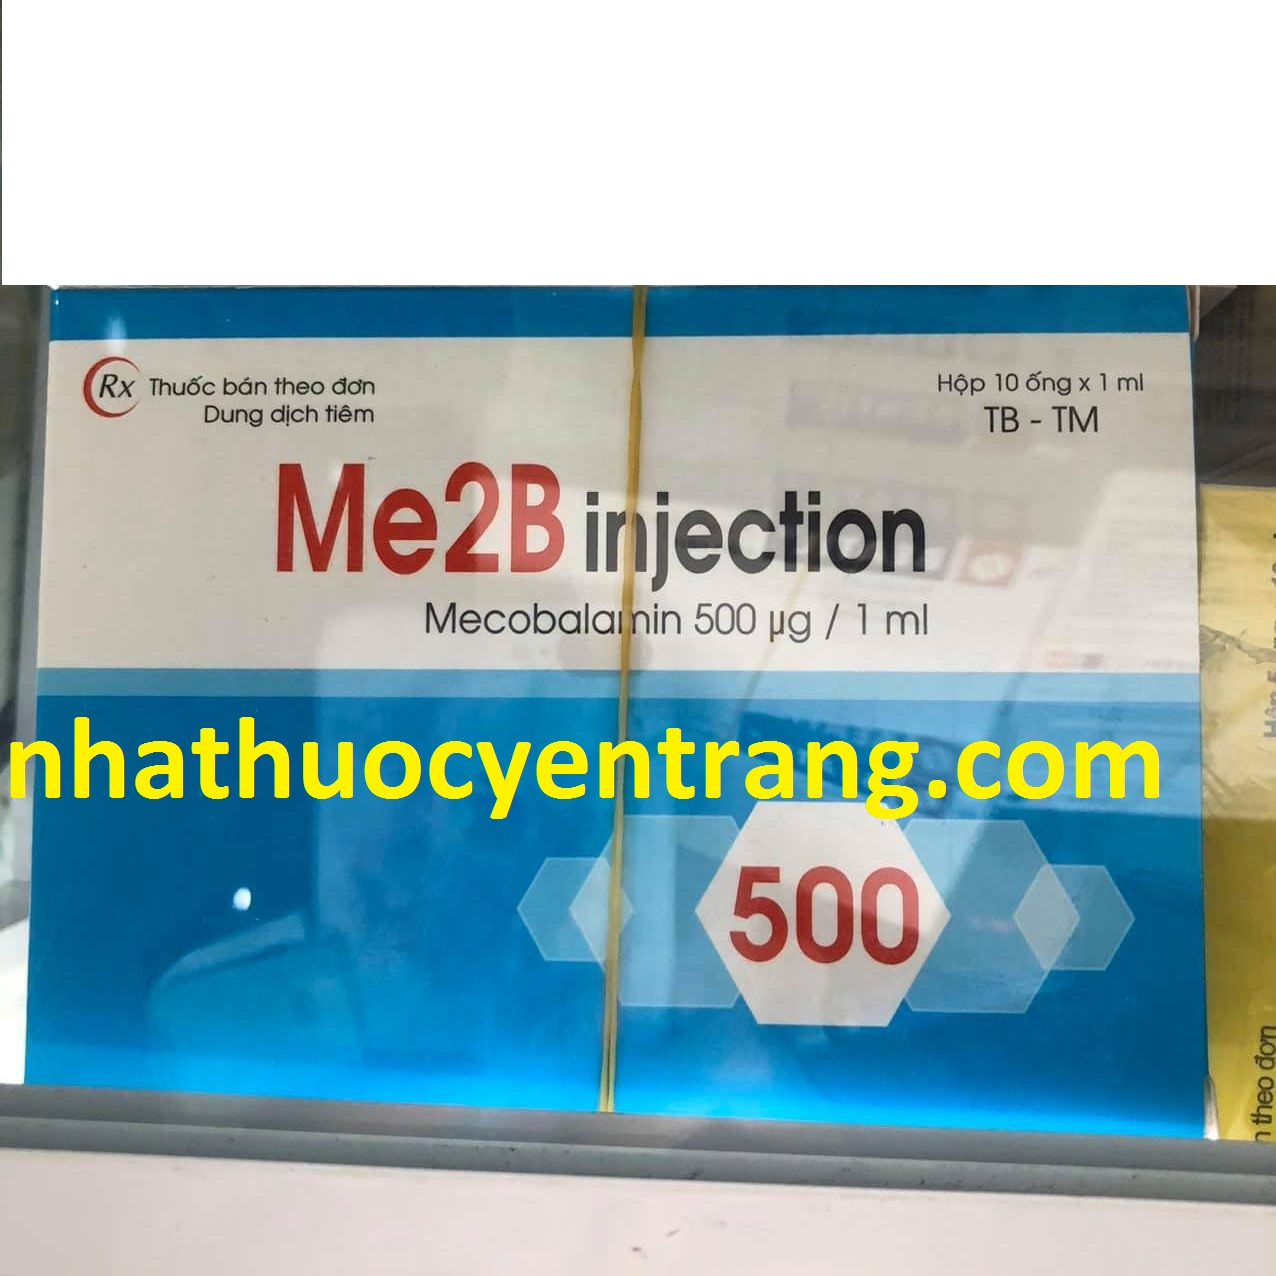 Me2B injection